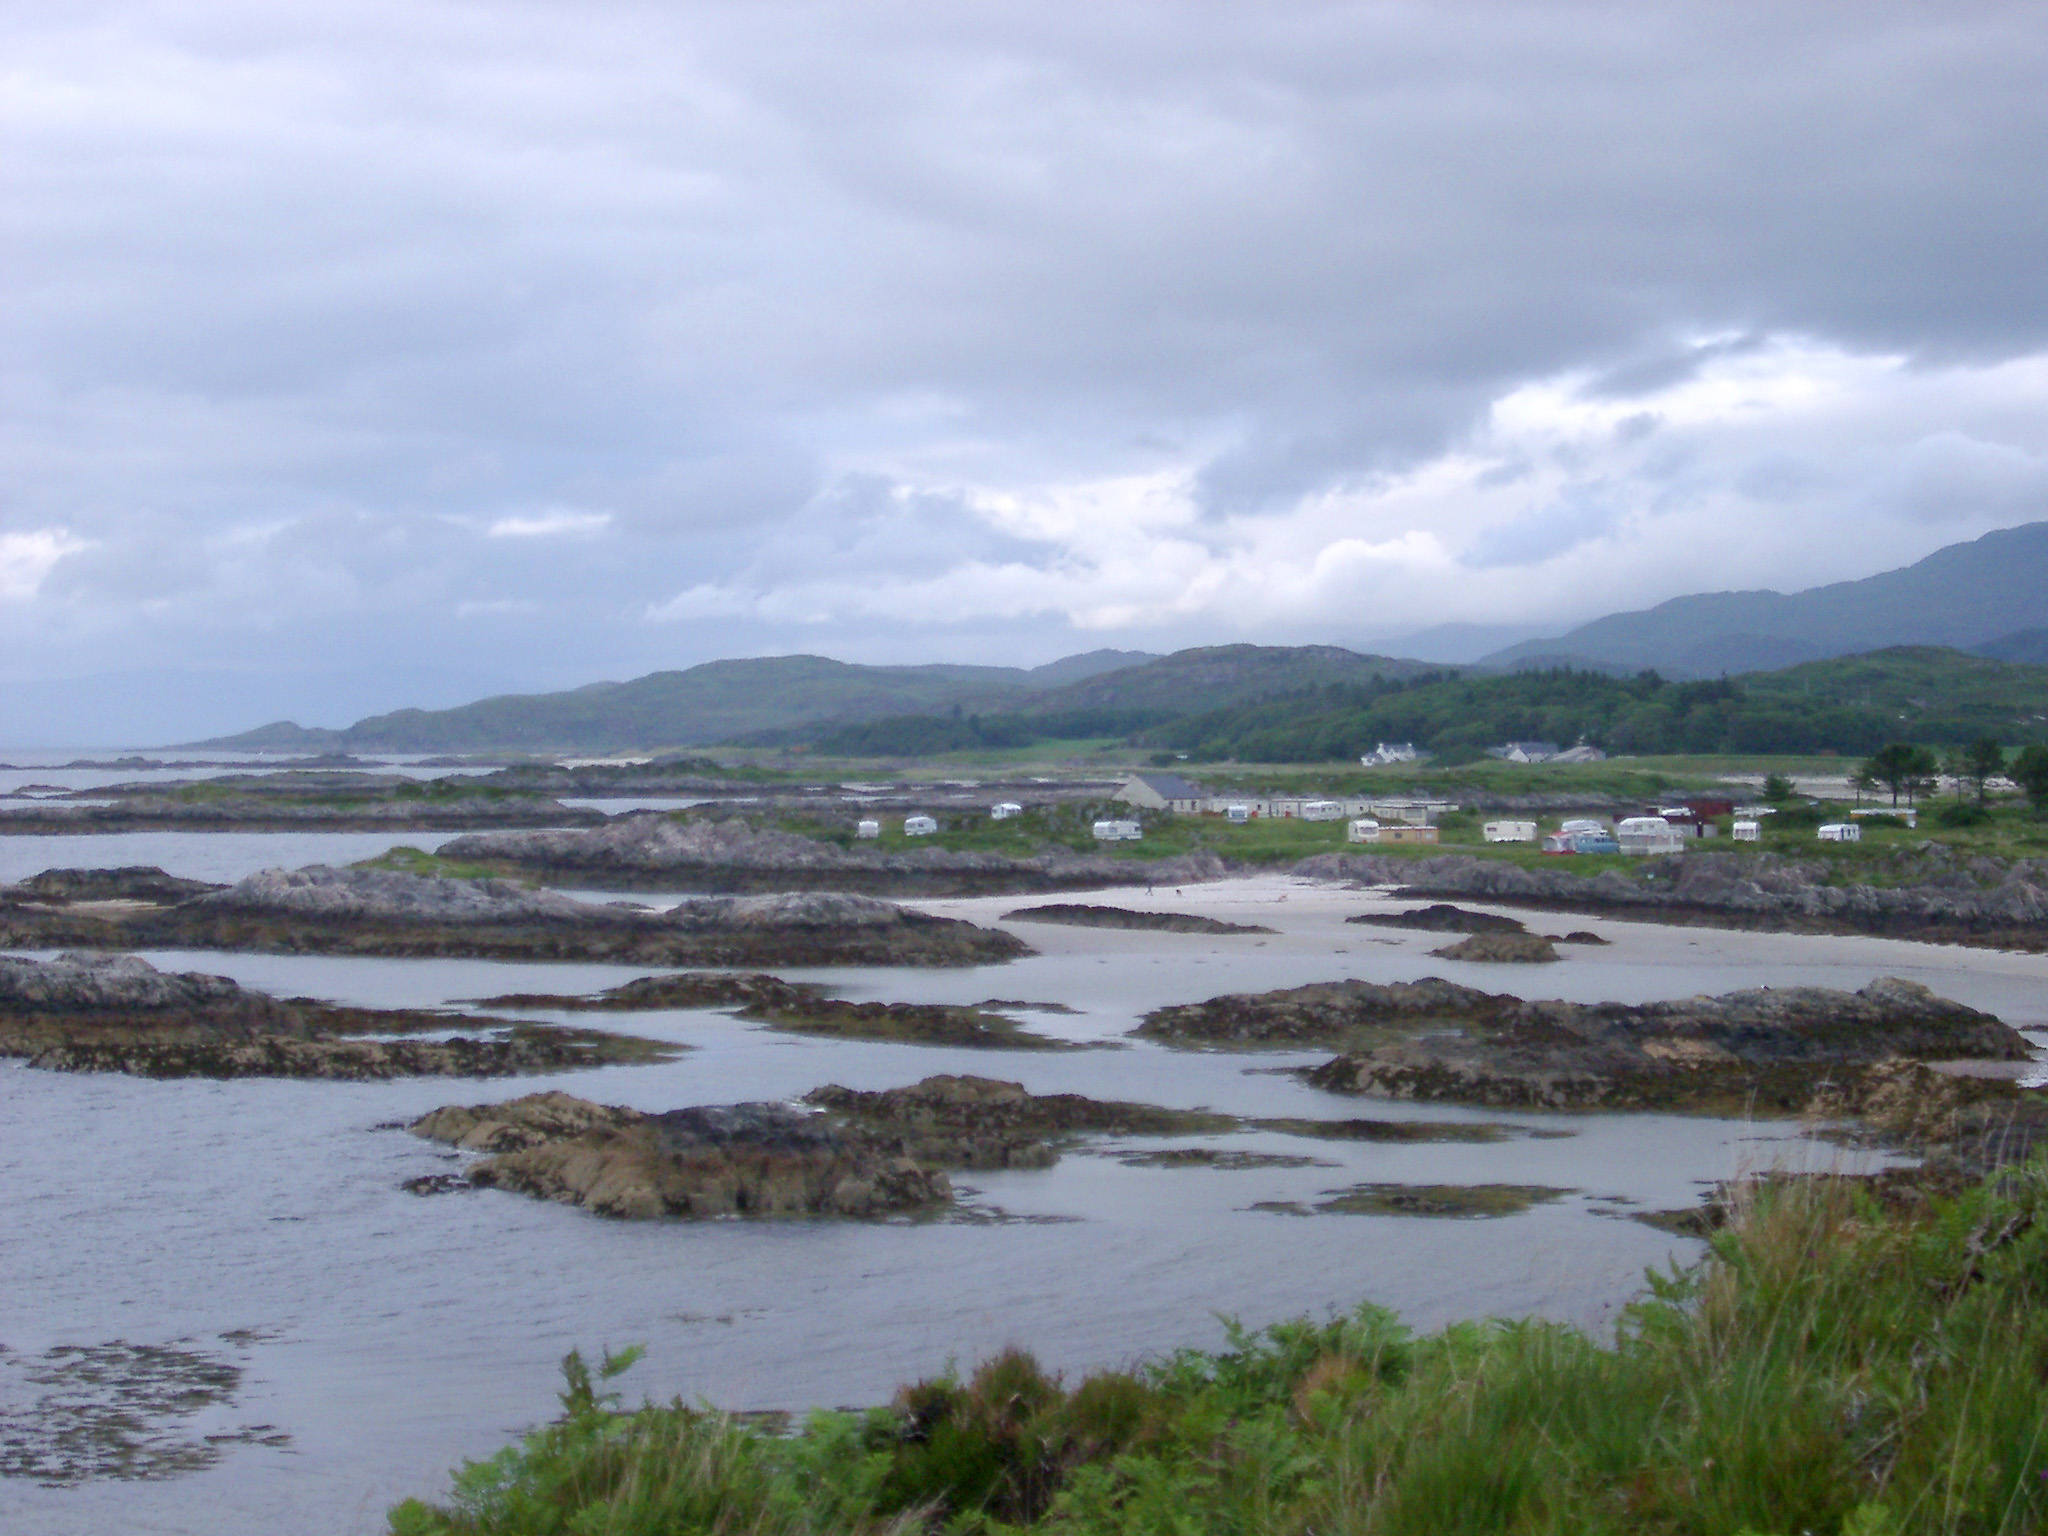 View across coastal grass and stones dotted in shallow water of houses and cottages along the shores of a loch against a moutain background and cloudy grey sky